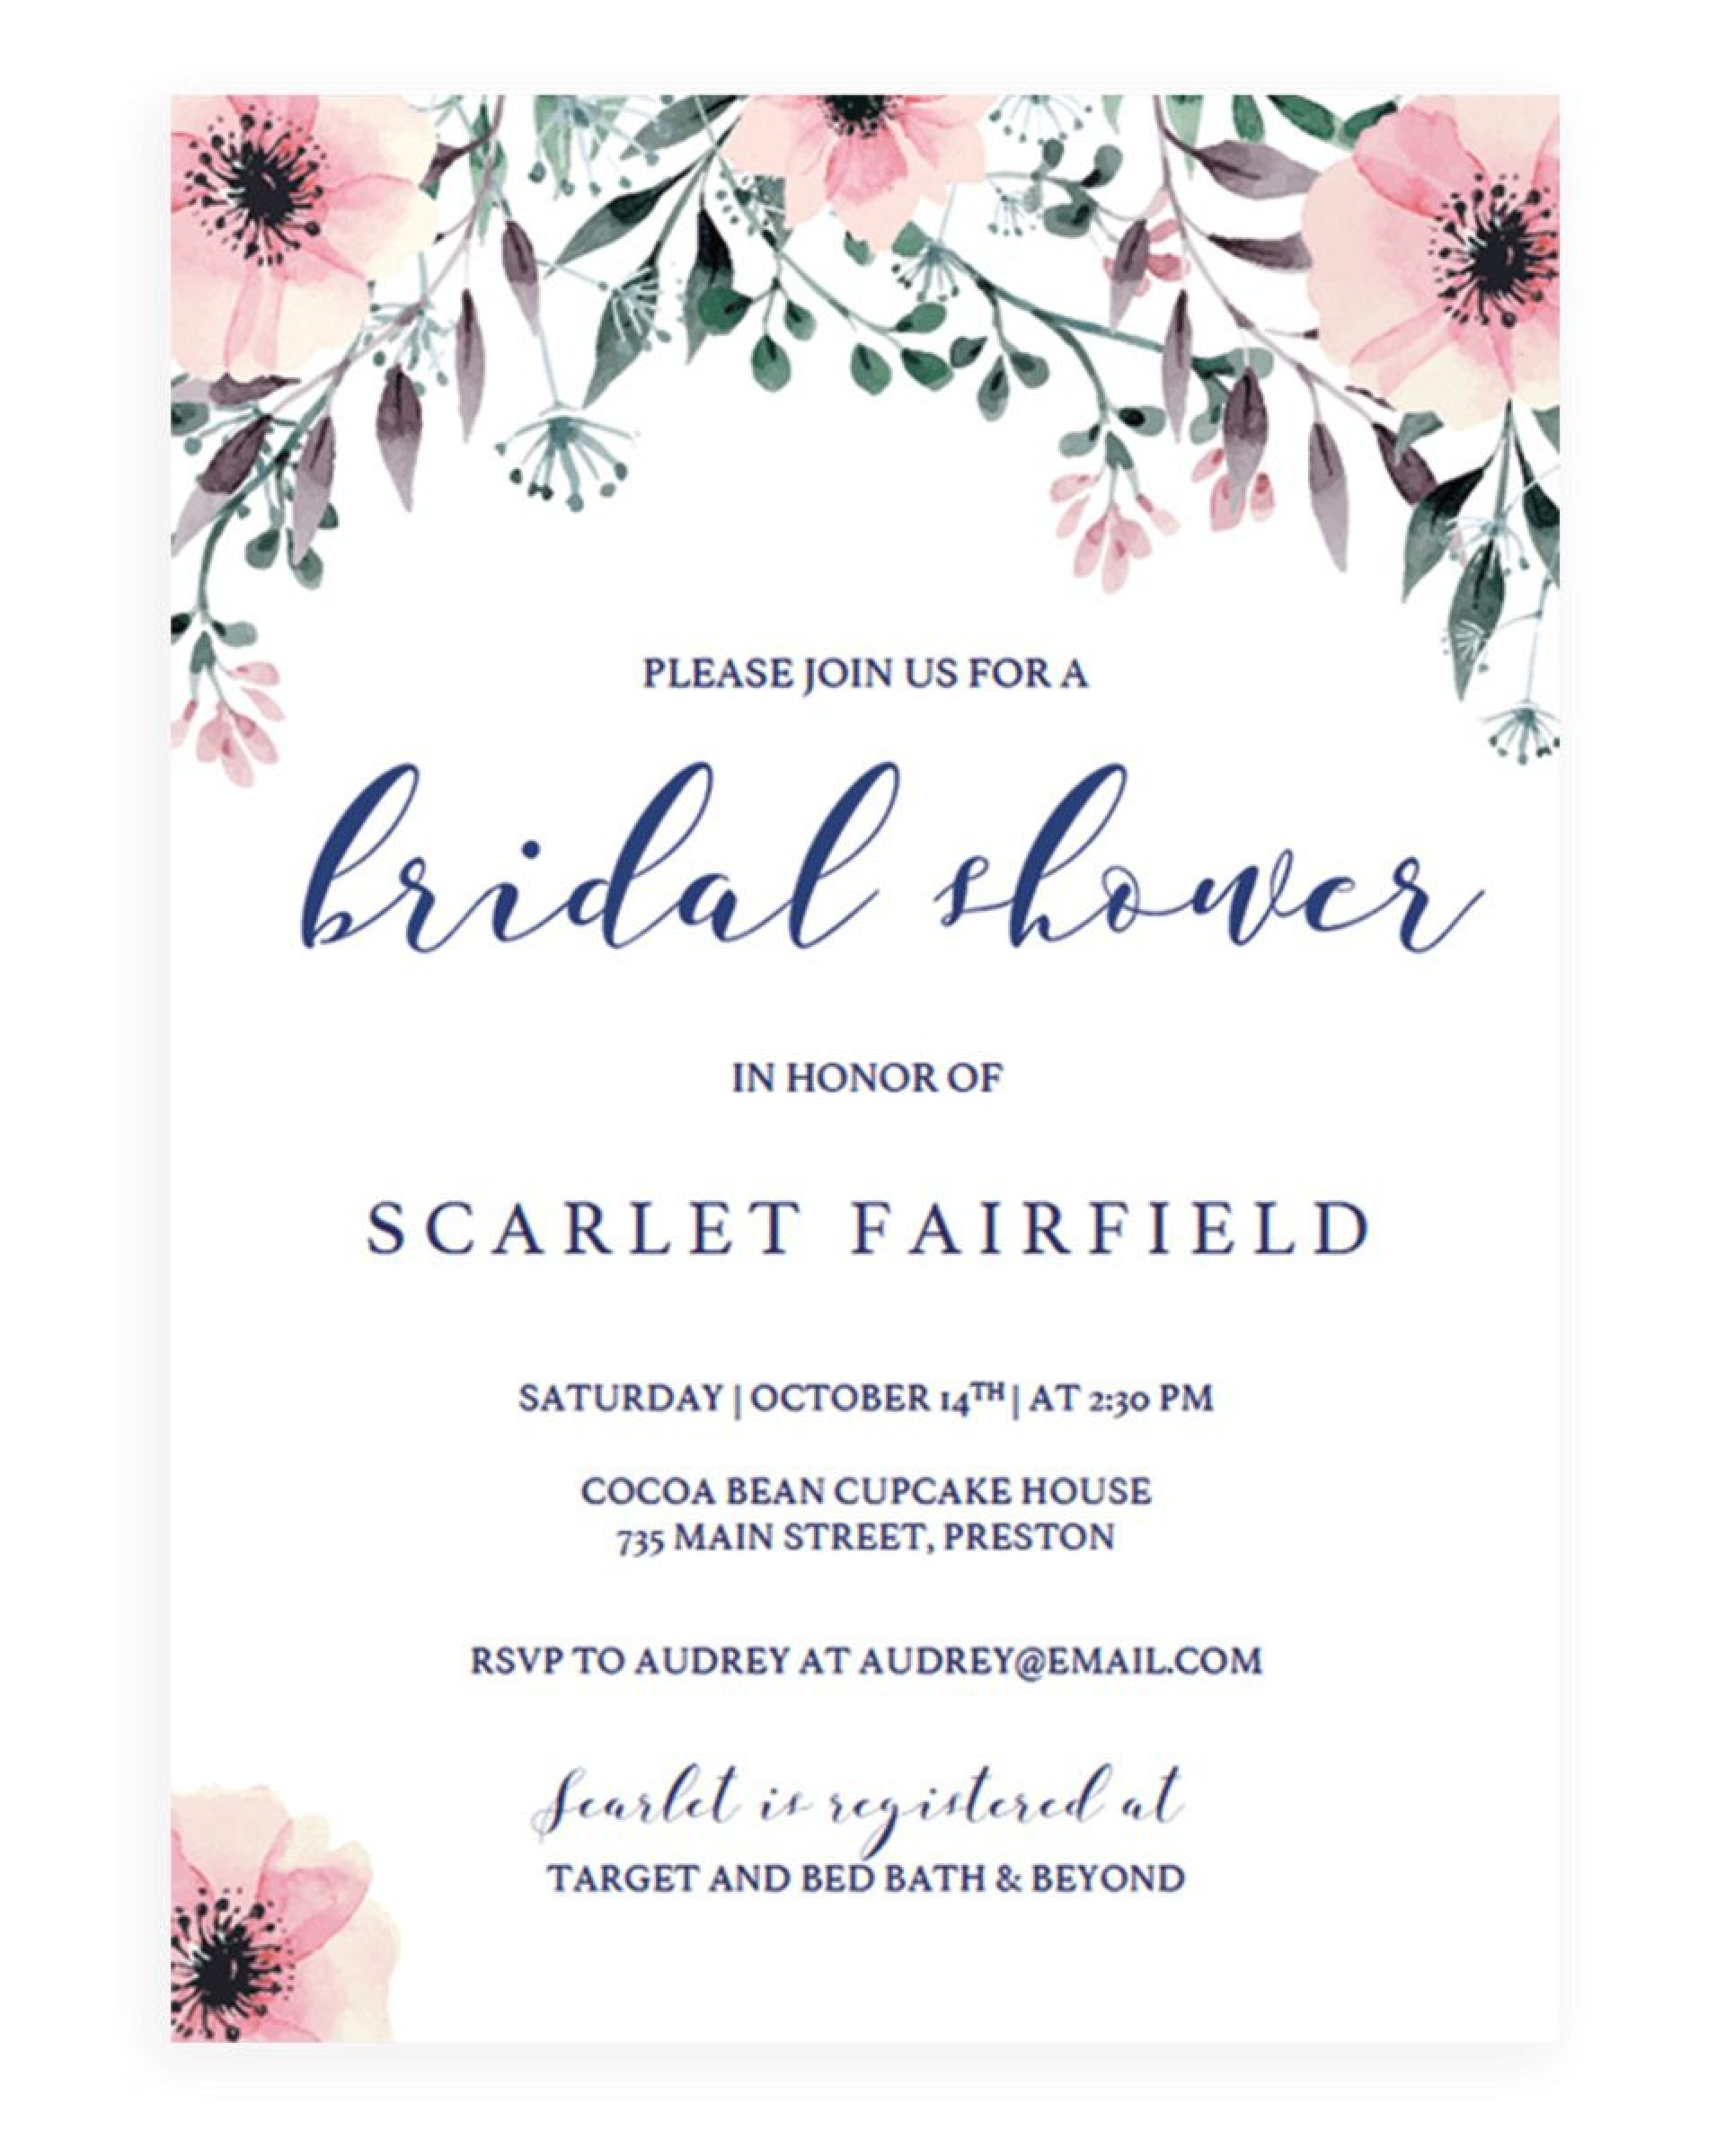 007 Simple Wedding Shower Invitation Template Photo  Templates Bridal Pinterest Microsoft Word Free For1920